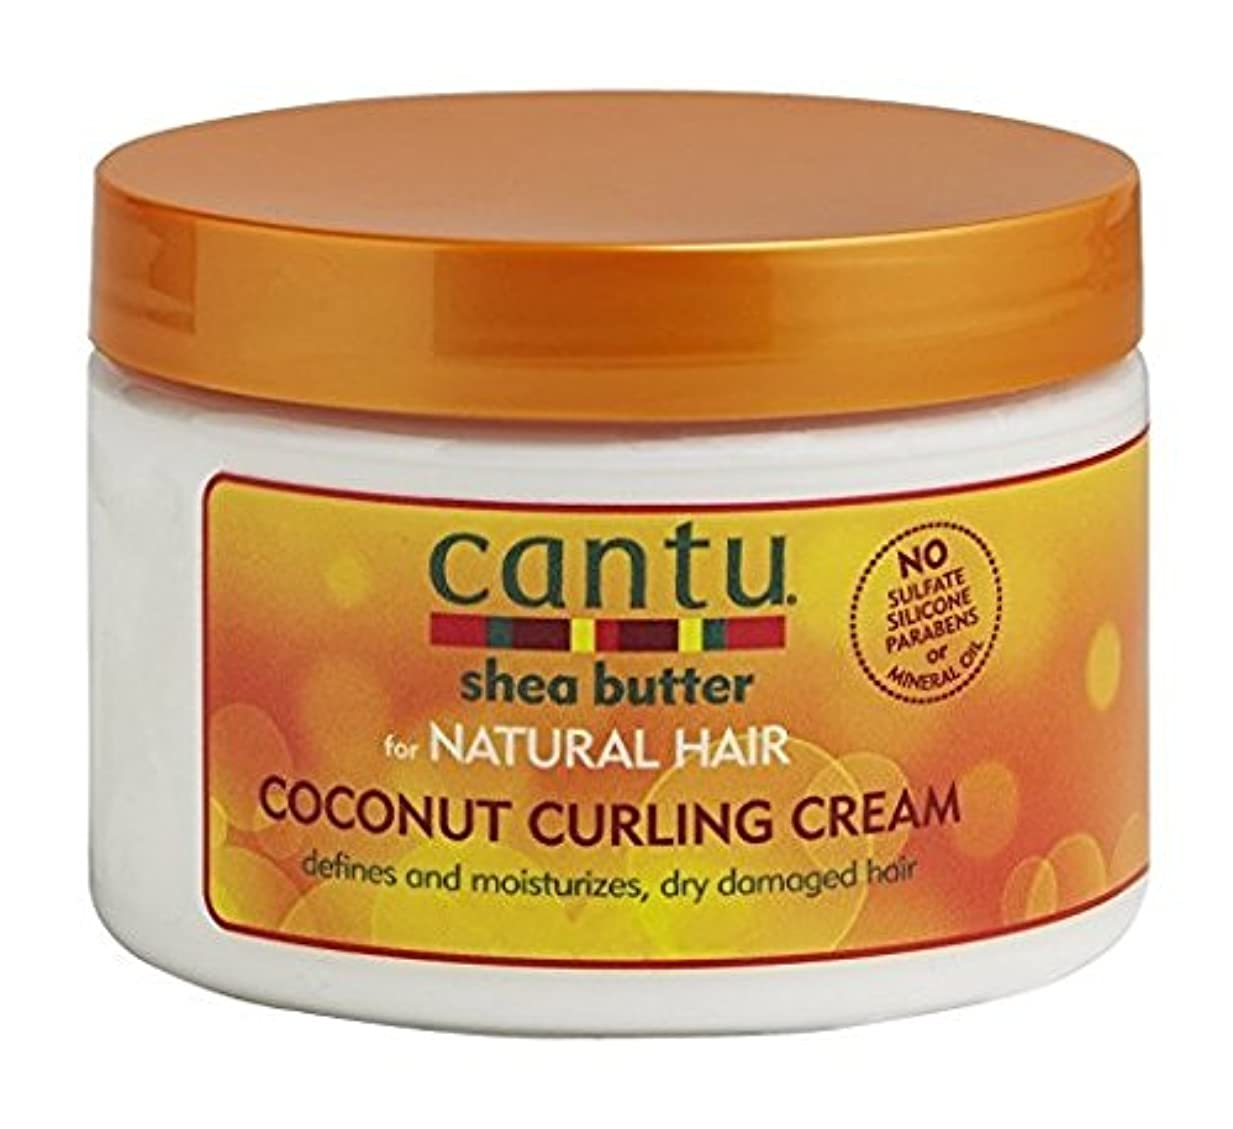 流取り壊すどうやらCantu Shea Butter for Natural Hair Coconut Curling Cream 340g